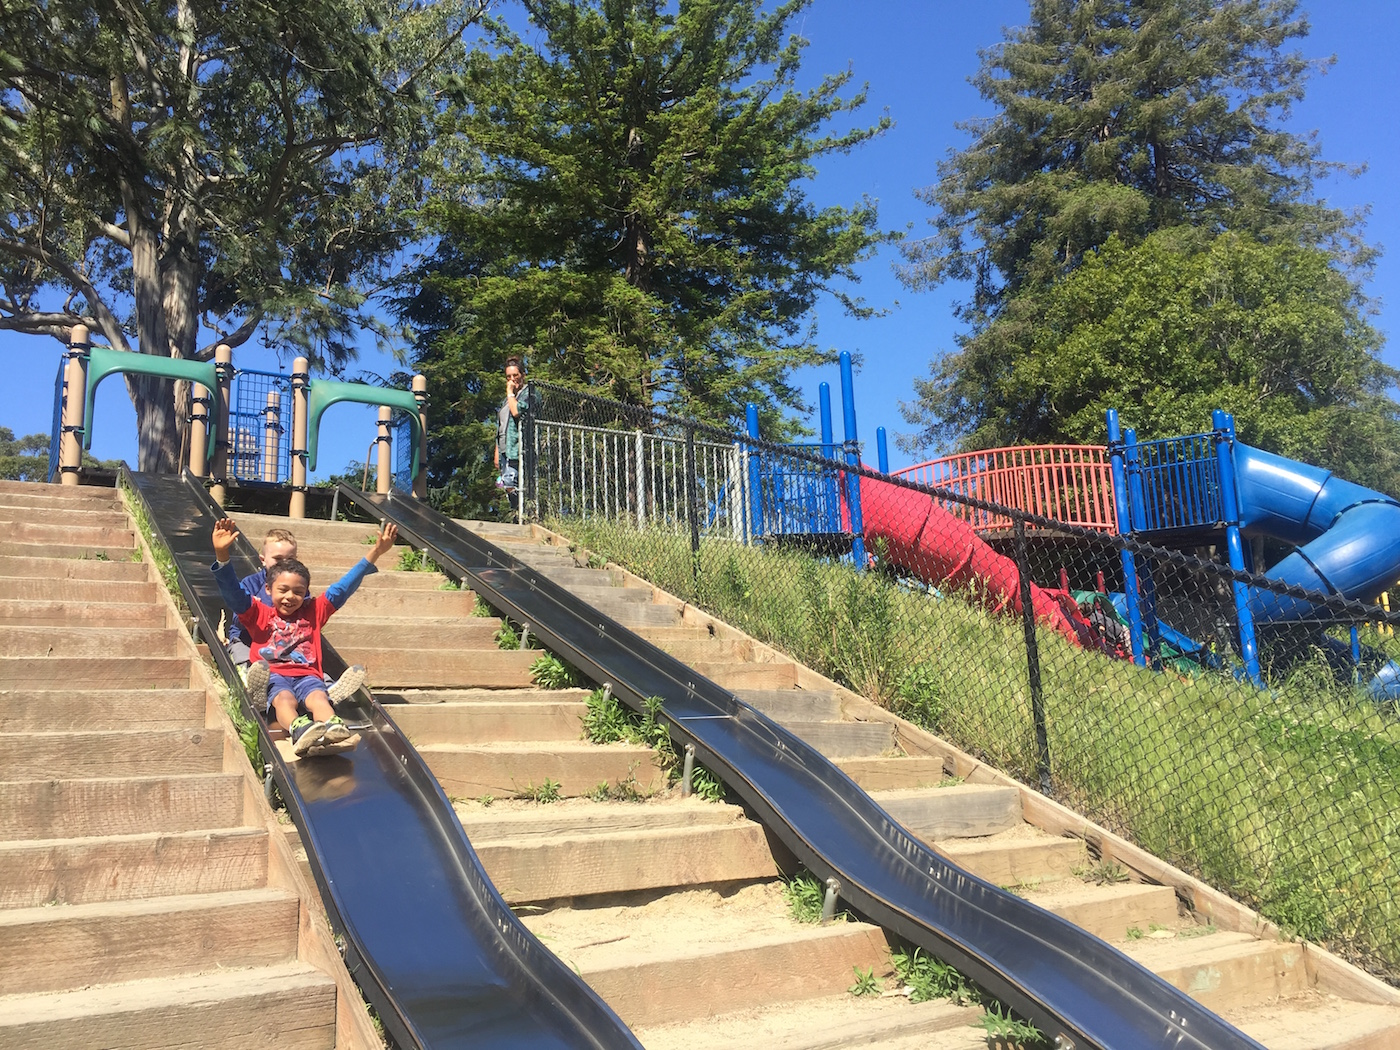 Slide like no one's watching at Ocean View Park.